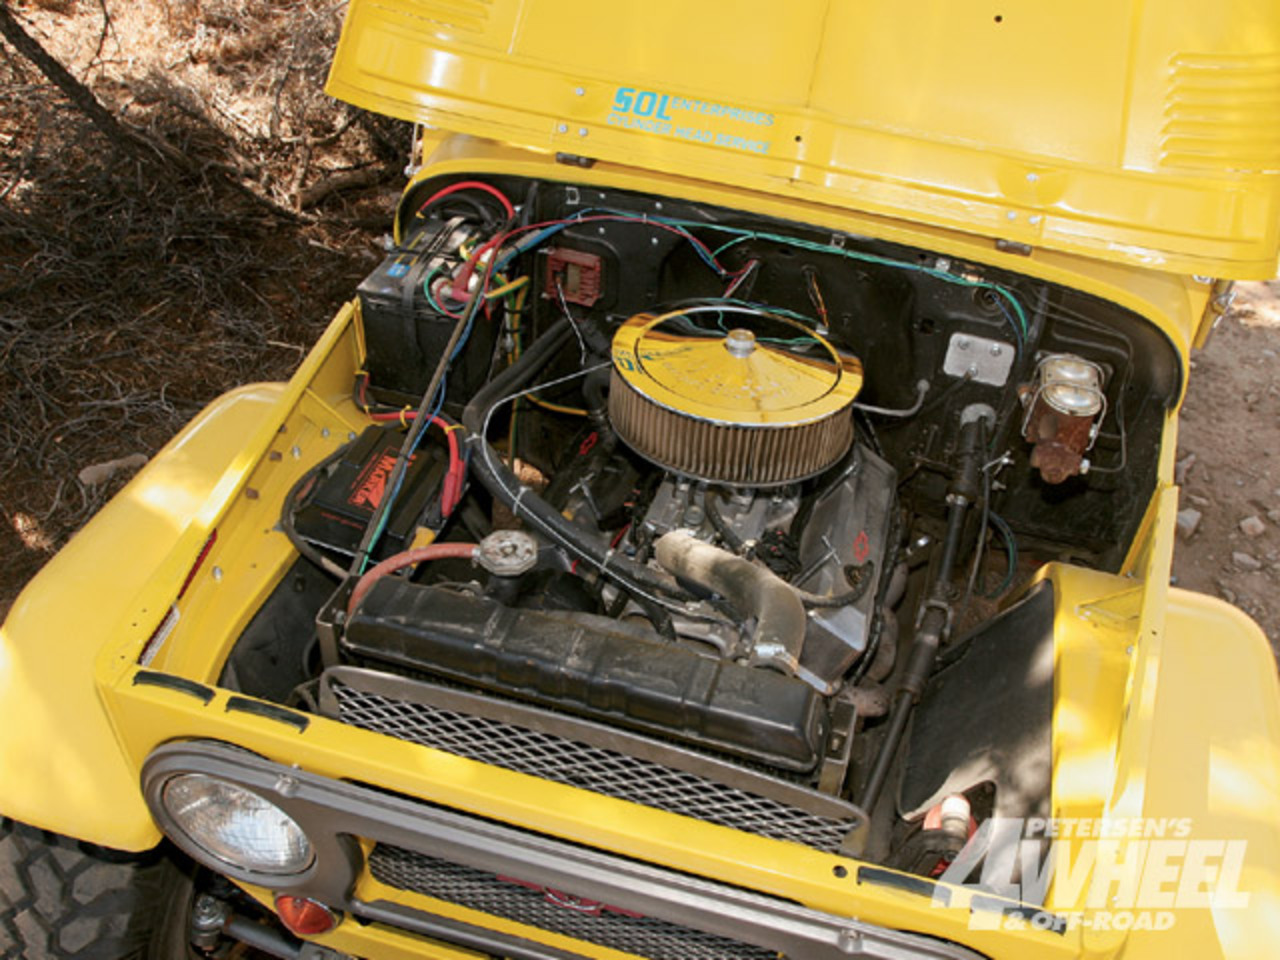 1964 Toyota Land Cruiser Fj40 Engine